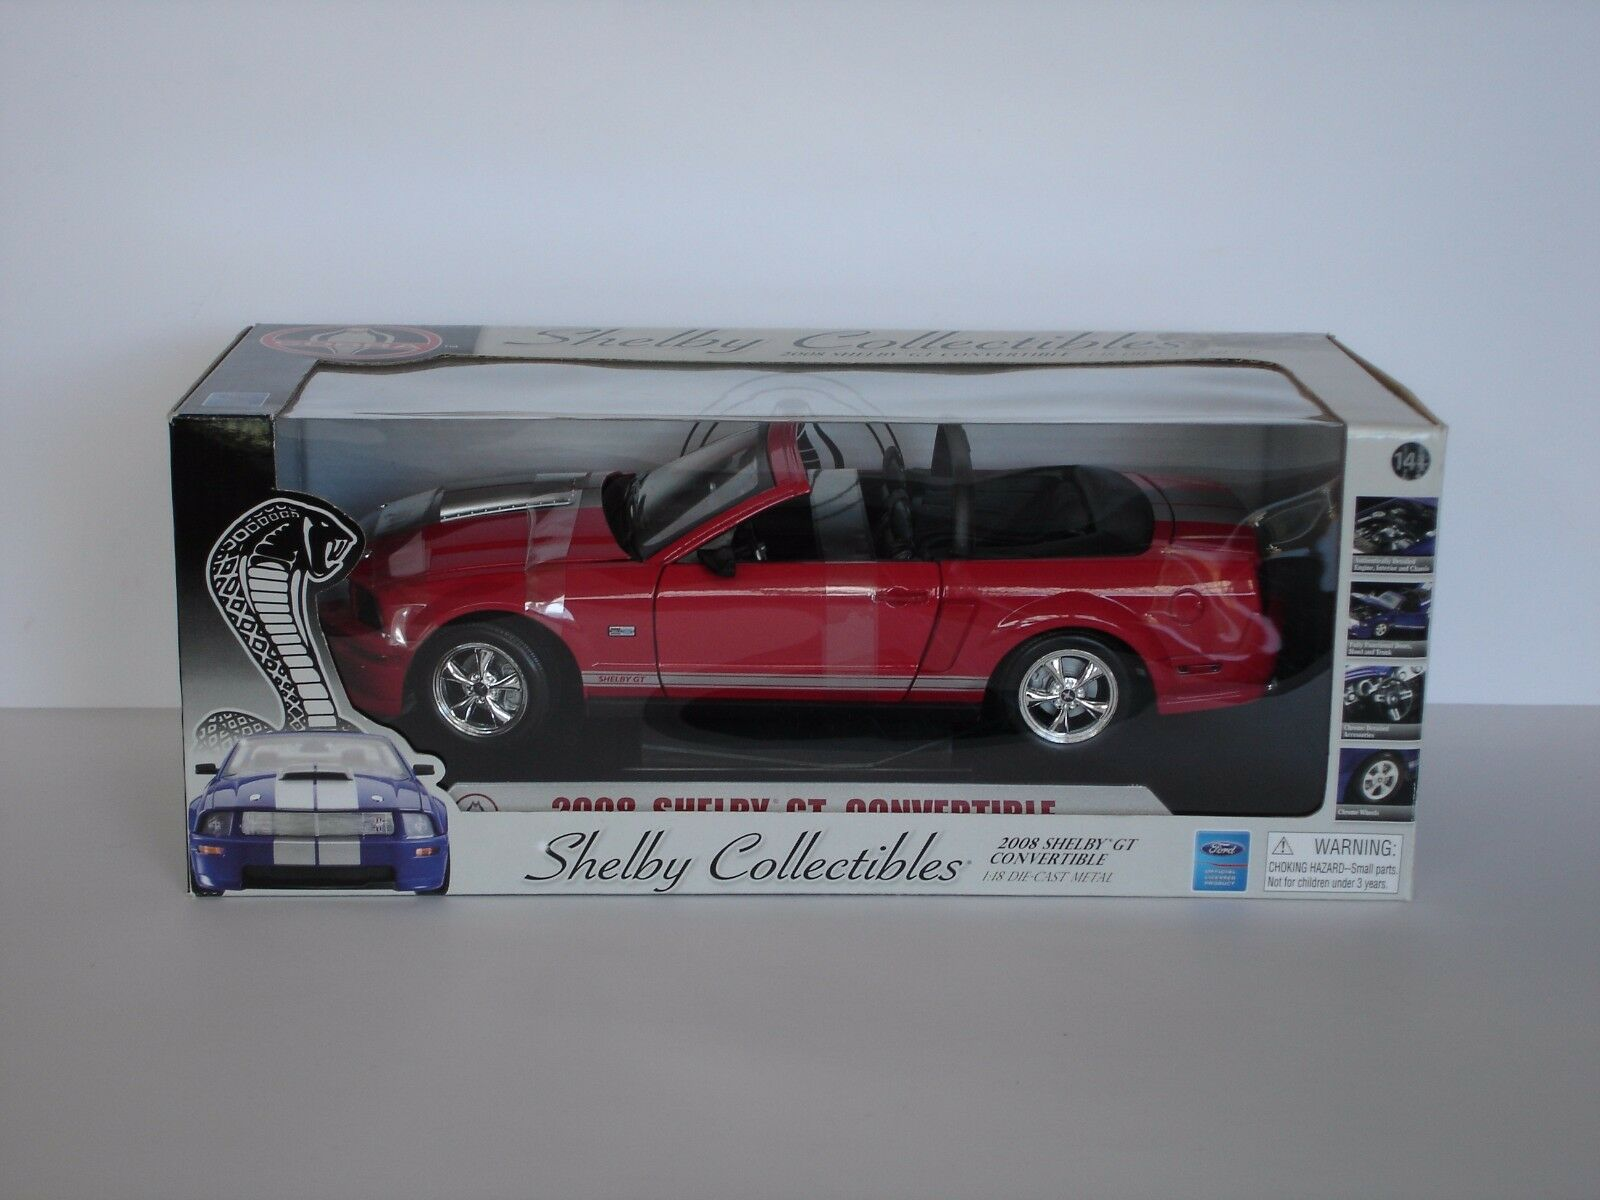 2008 Shelby GT Converdeible, rosso - 1 18 - Shelby Collectibles Revell (09083)